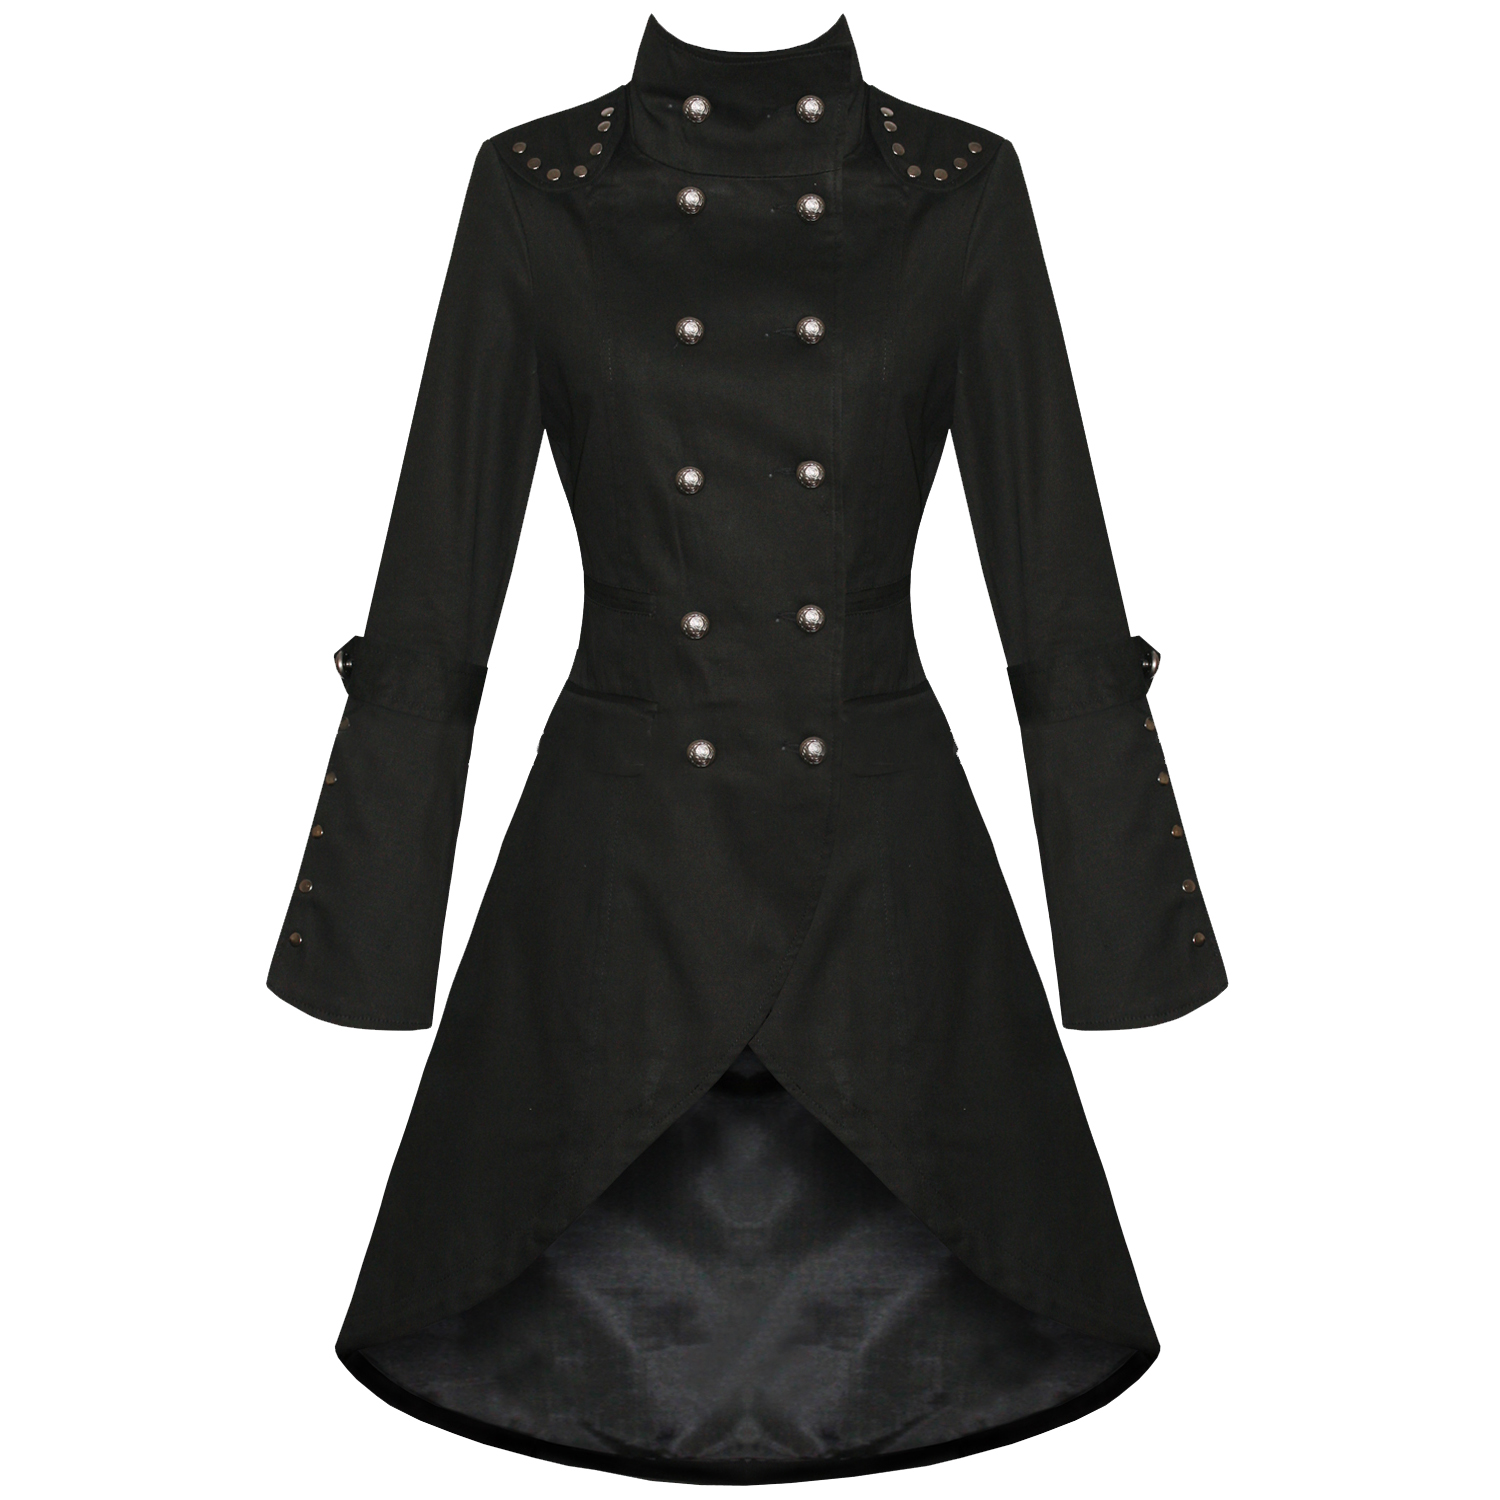 WOMENS LADIES NEW BLACK GOTHIC STEAMPUNK MILITARY COTTON COAT